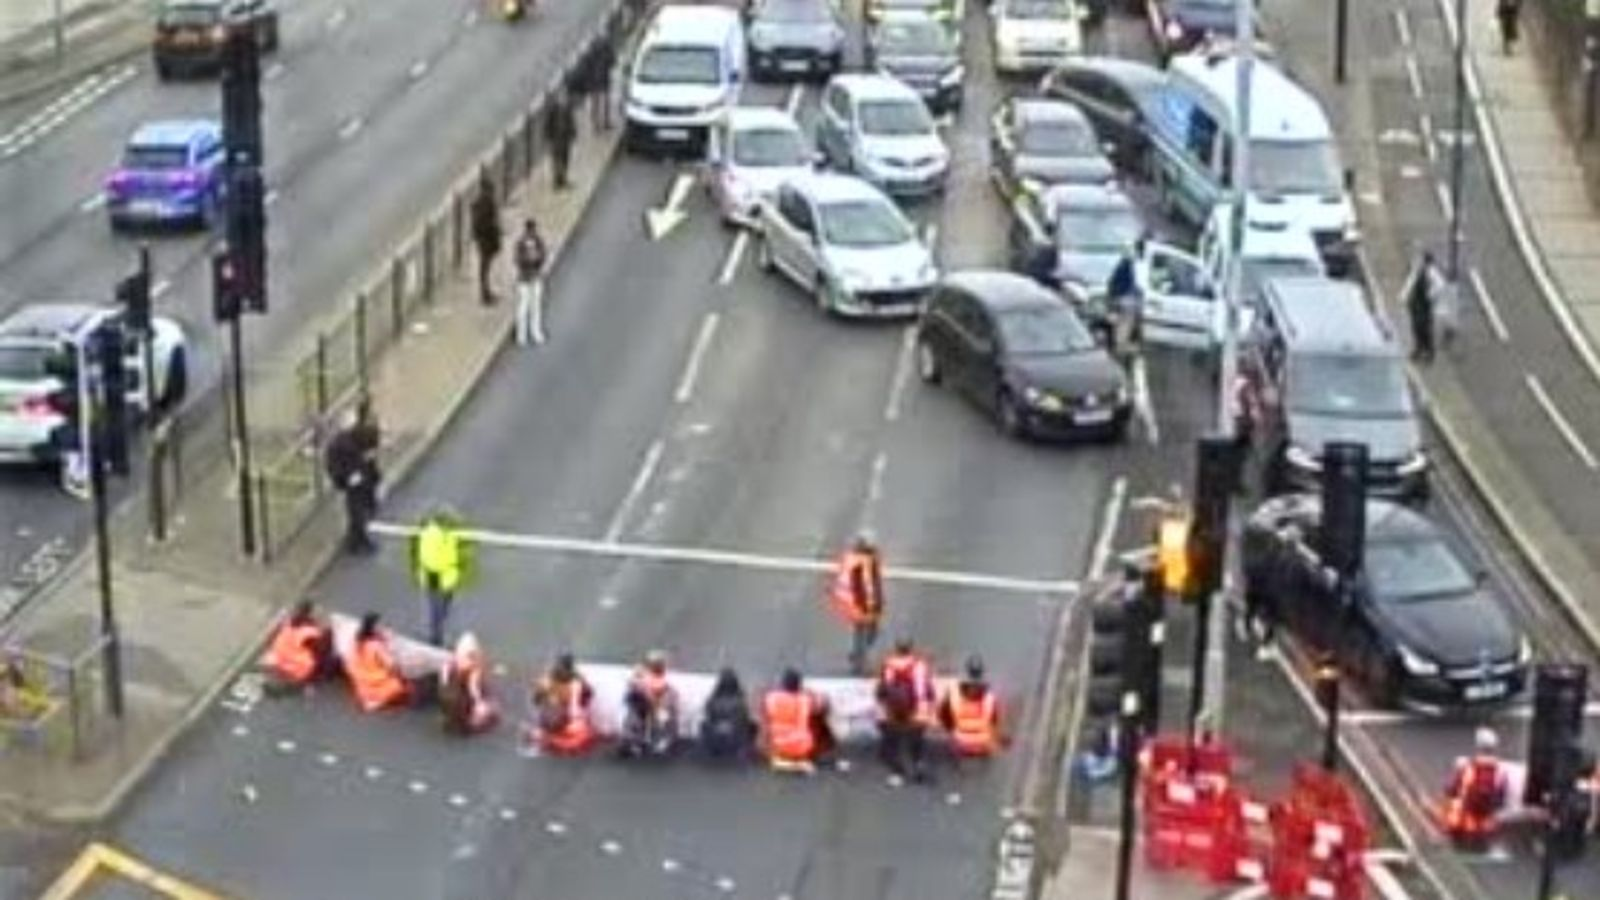 Insulate Britain protesters block roads in Dartford and west London